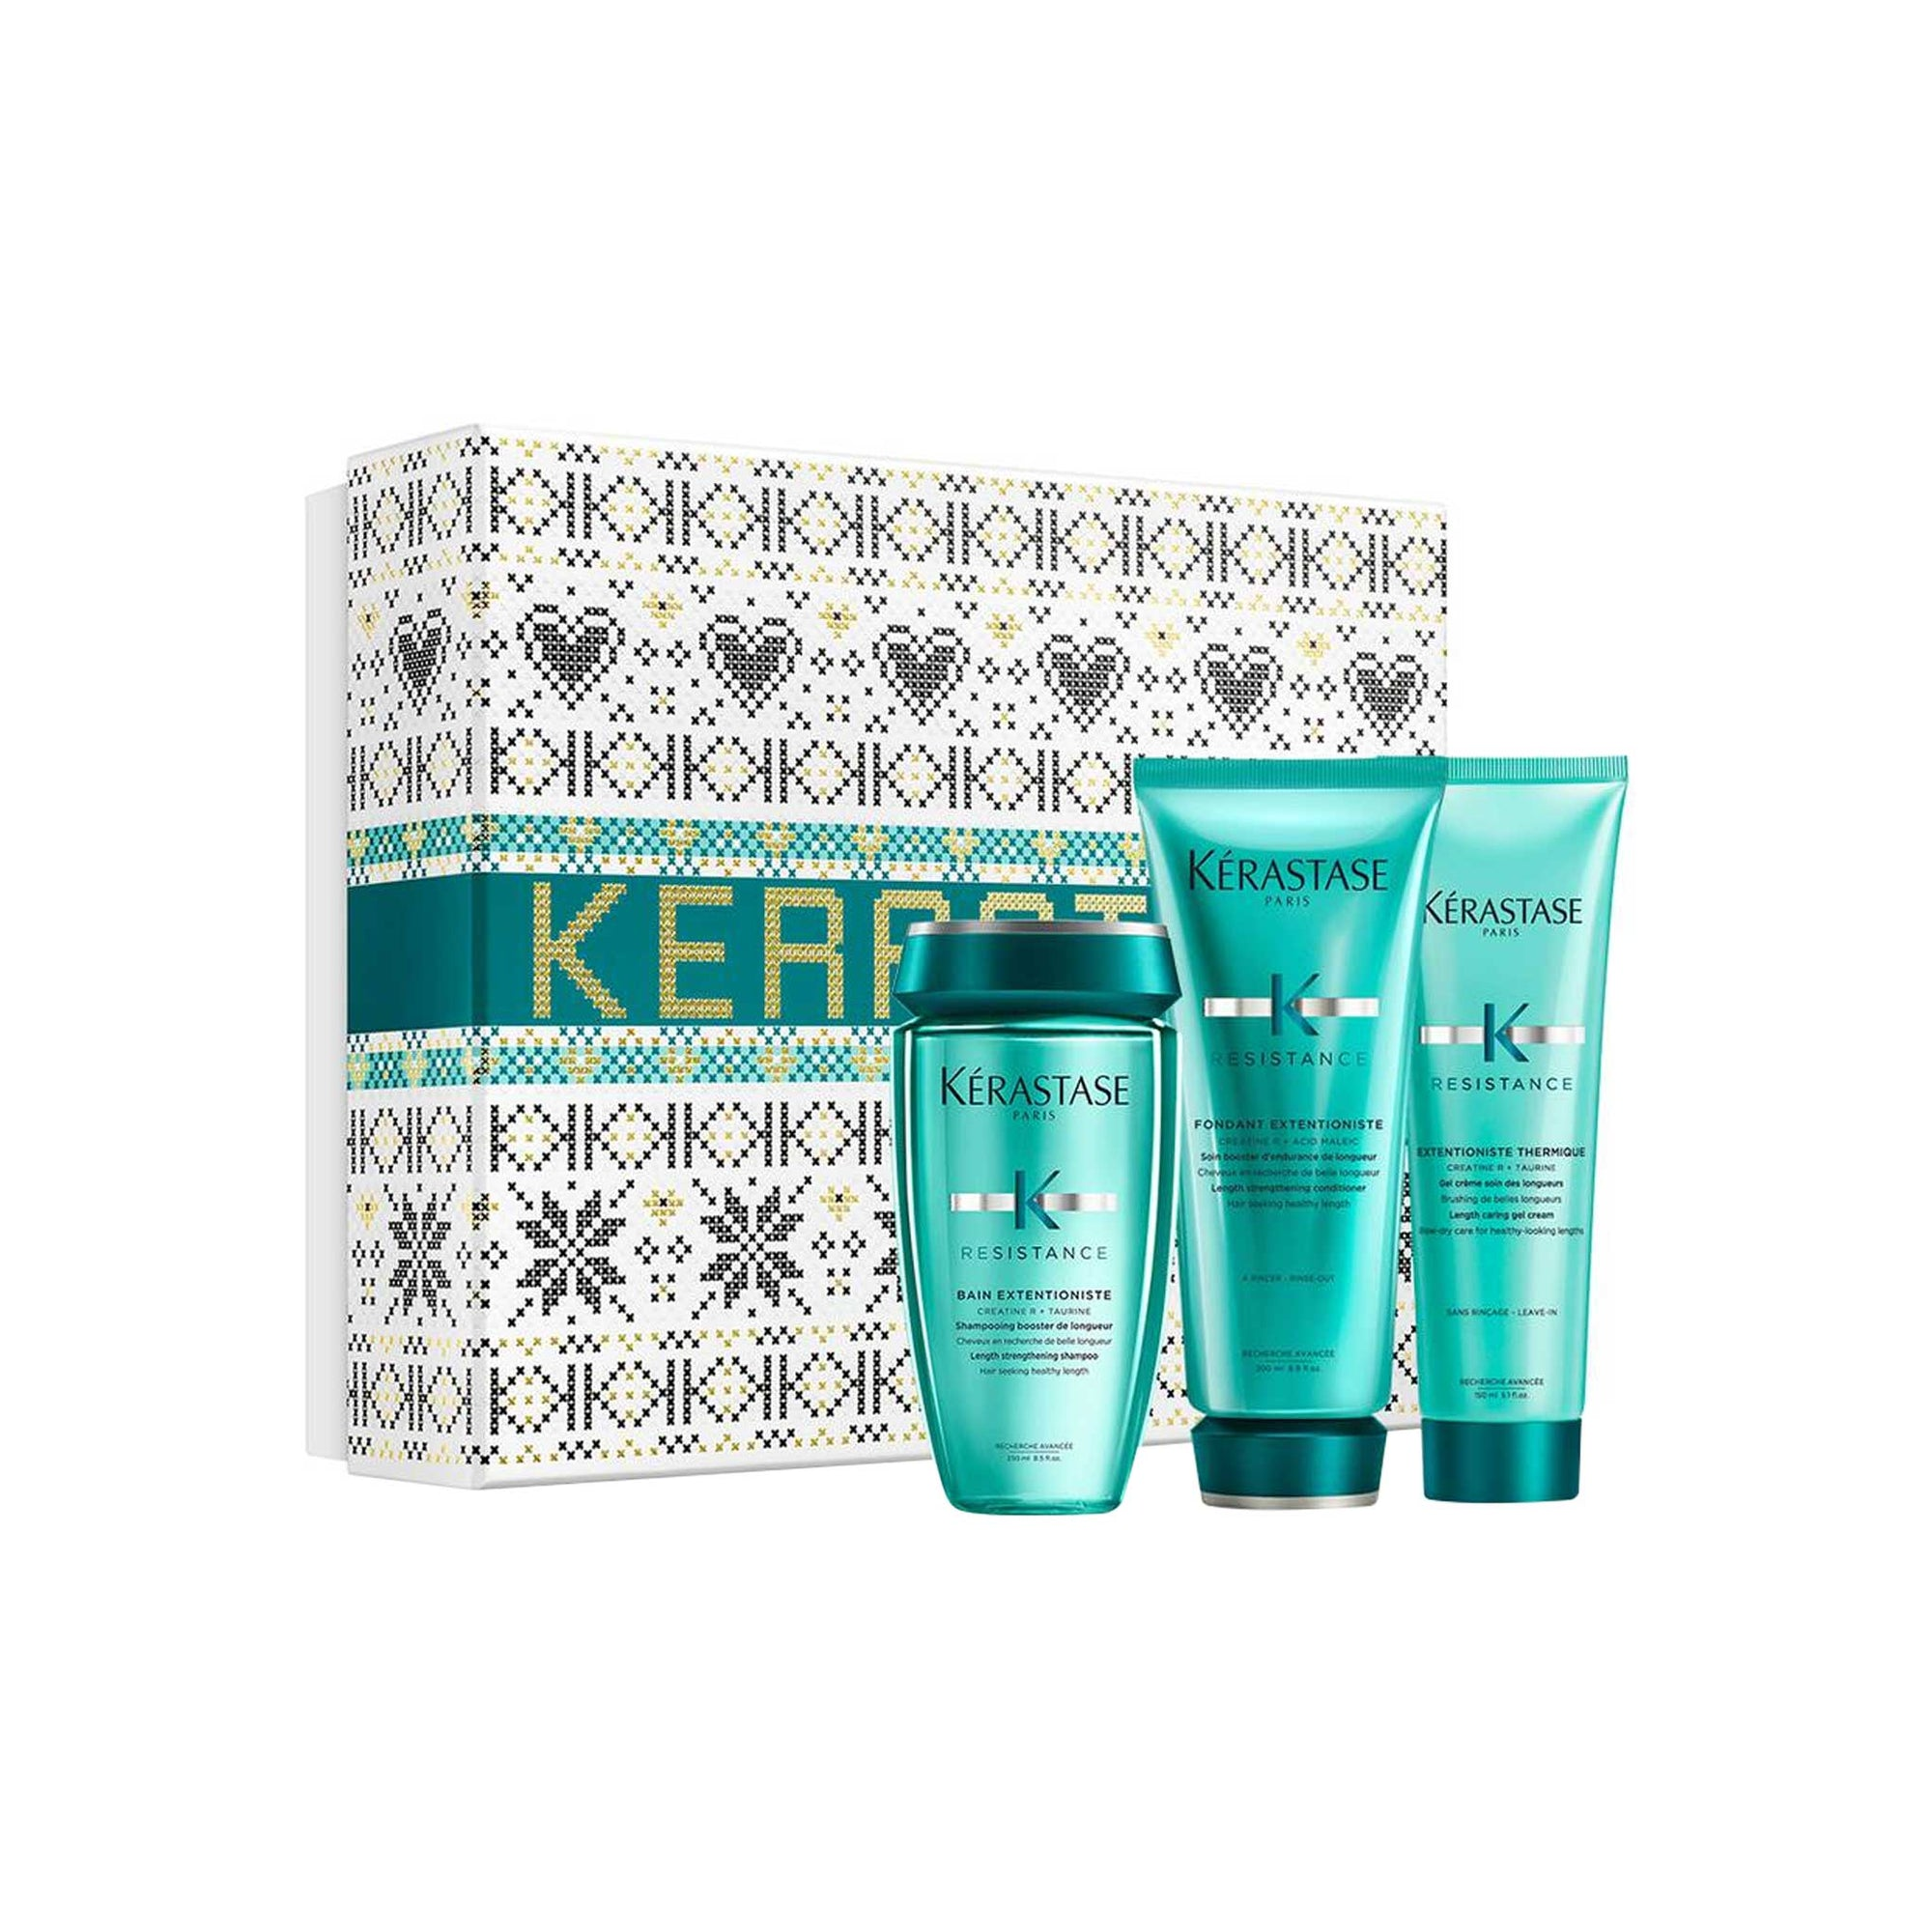 Kérastase Extentioniste Luxury Gift Set For Healthier Looking Lengths